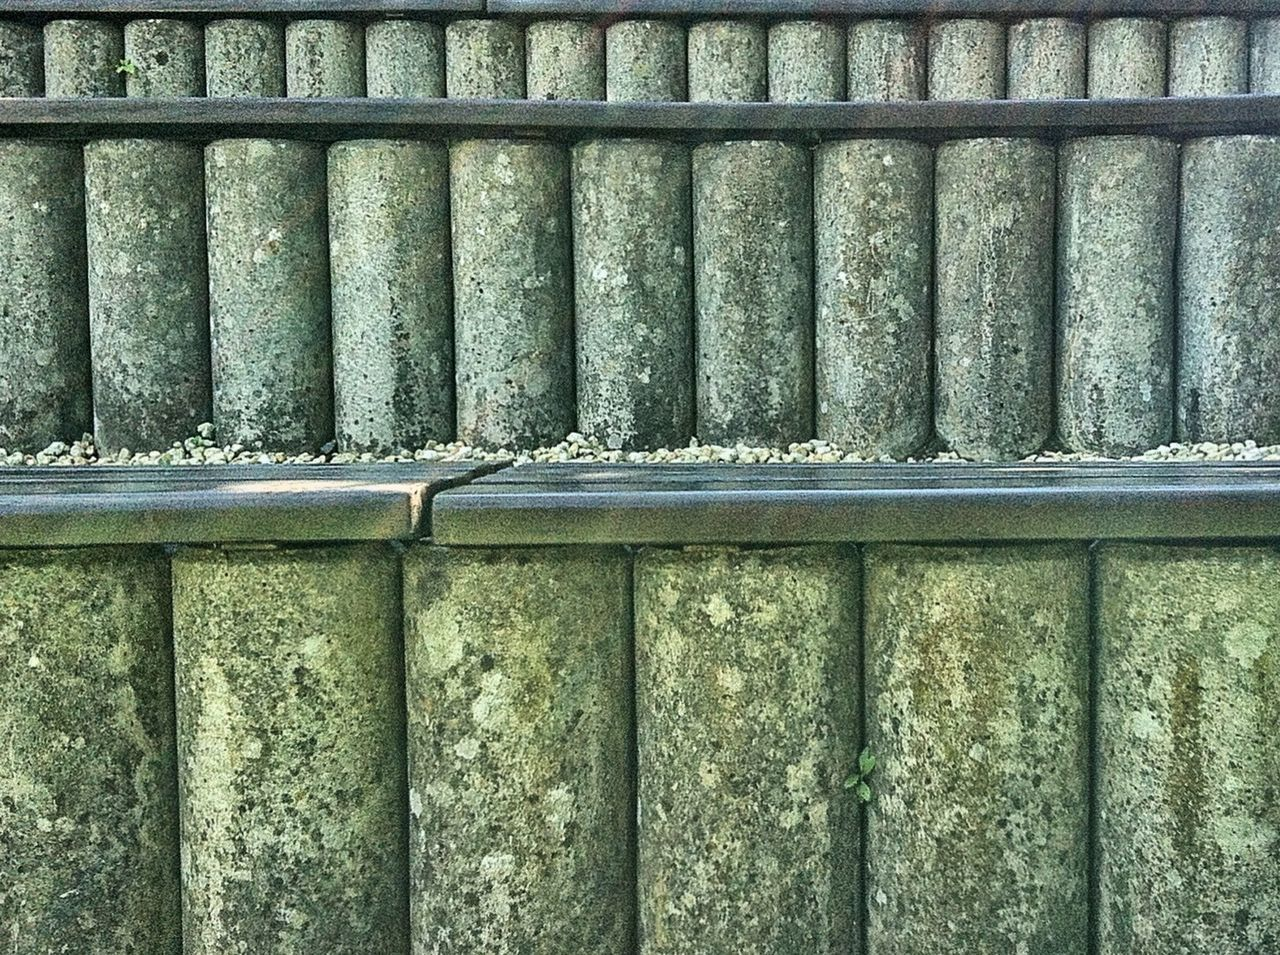 Stairs Texture Hanging Out Textures And Surfaces Nature Textures Symmetrical Symmetry Stones Jopesfotos - Nature